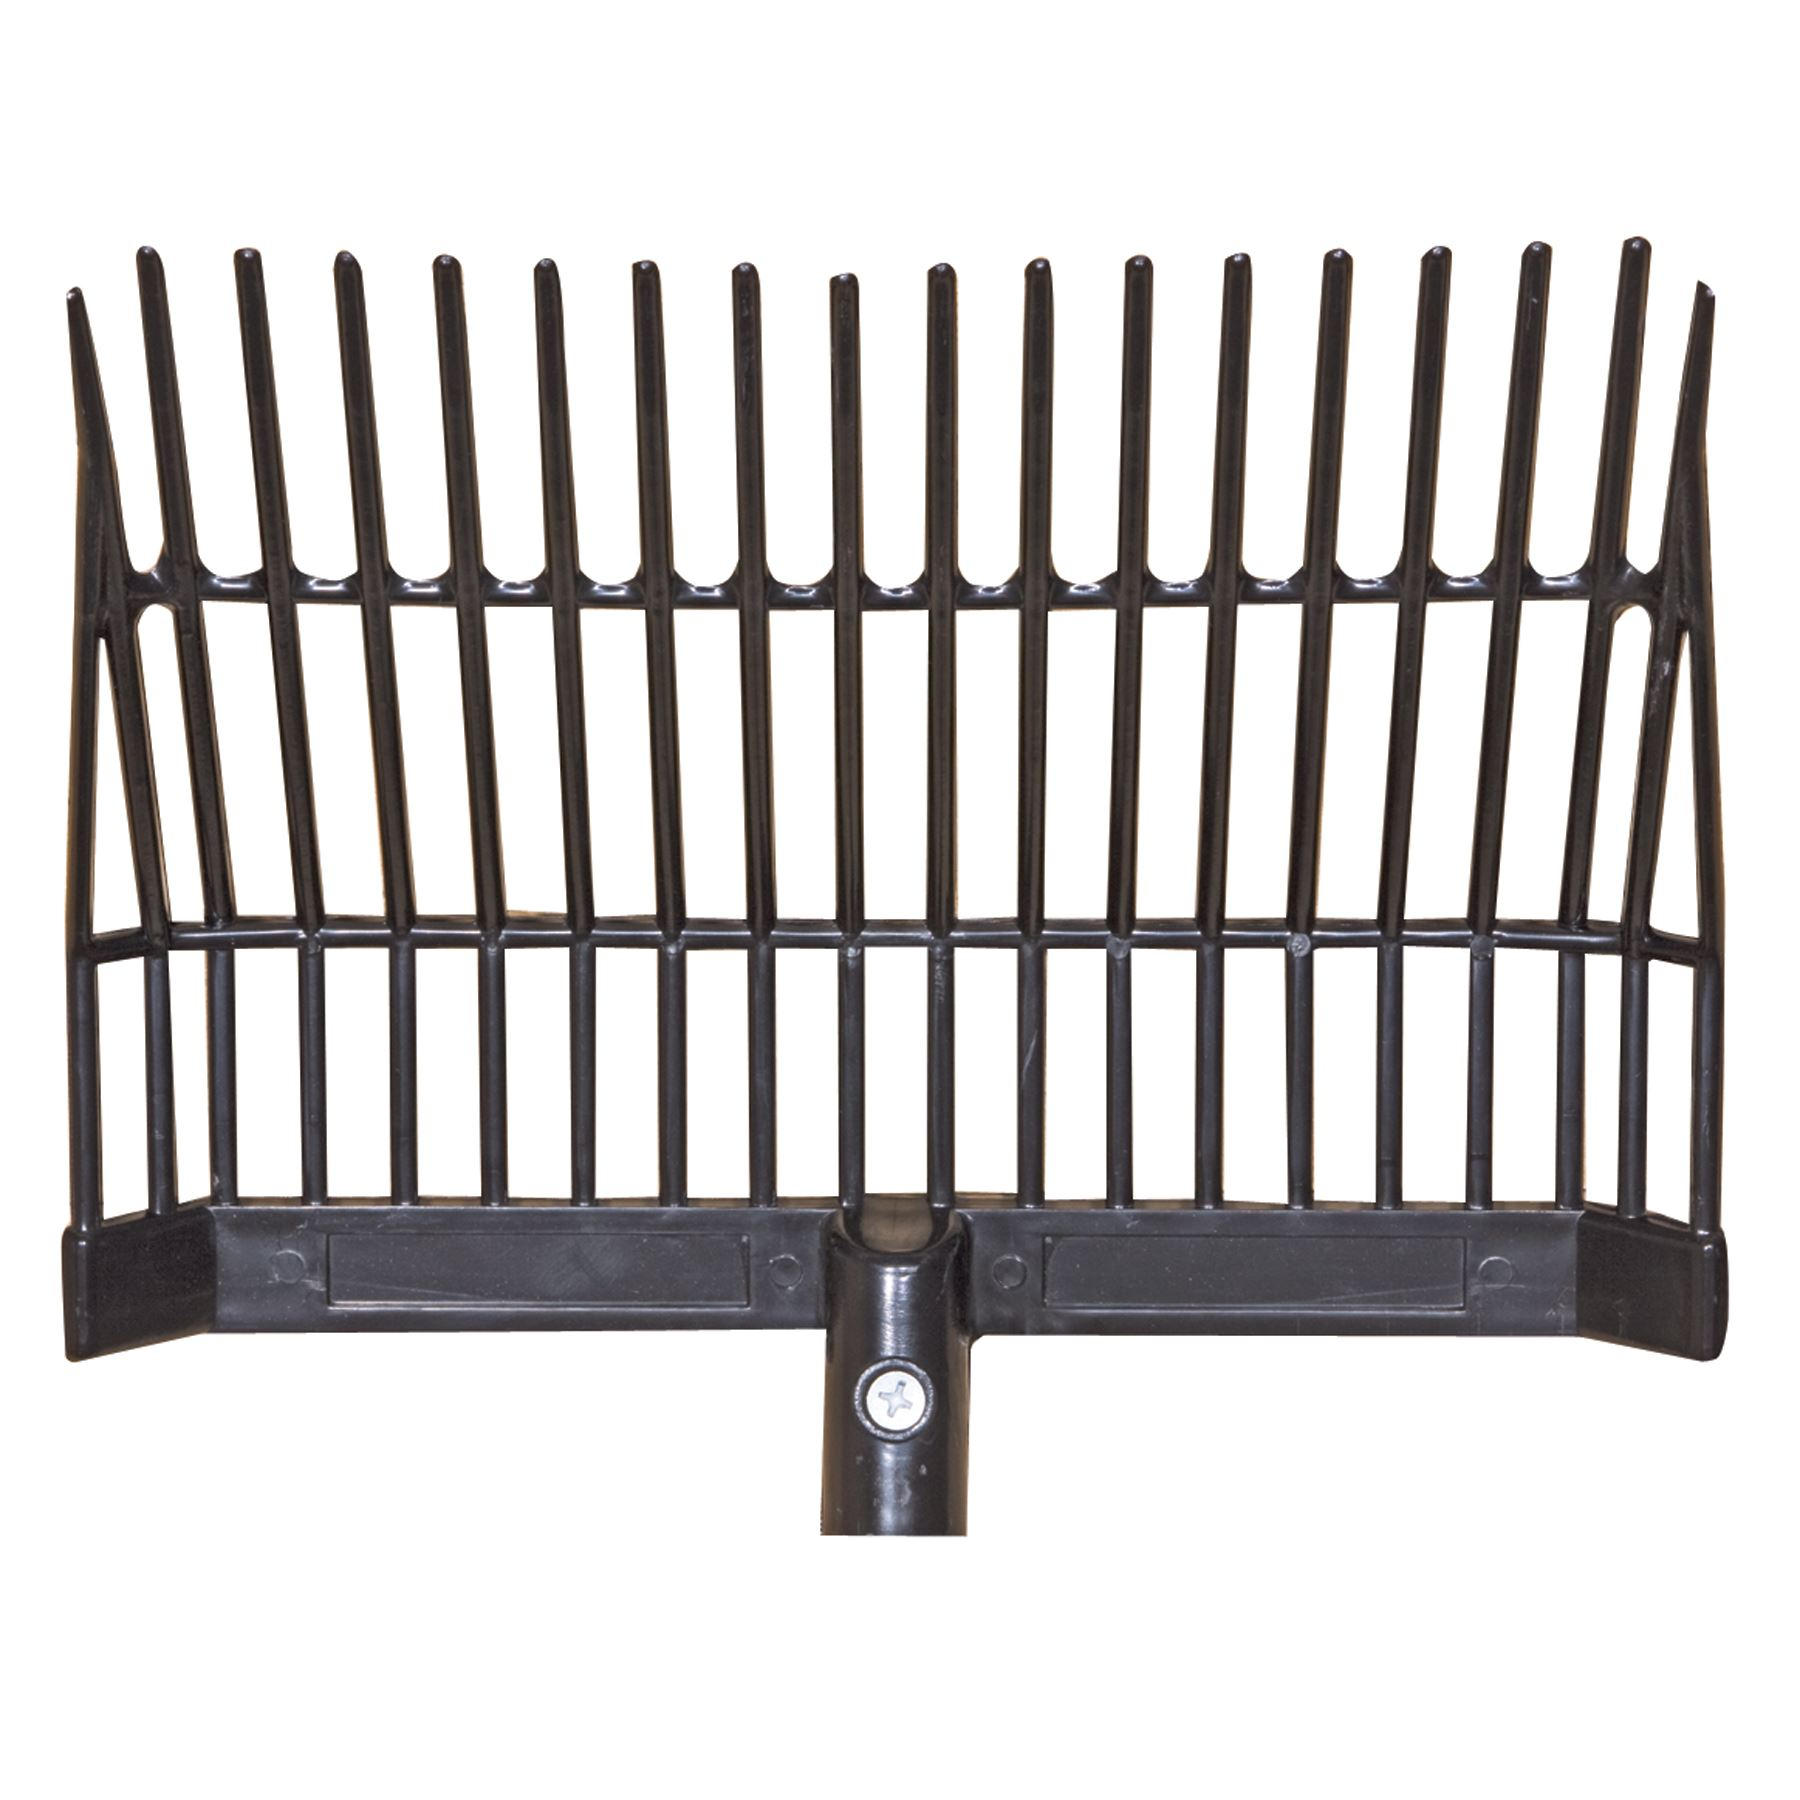 Dura-Tech® Manure Fork Head Only 2 Bar